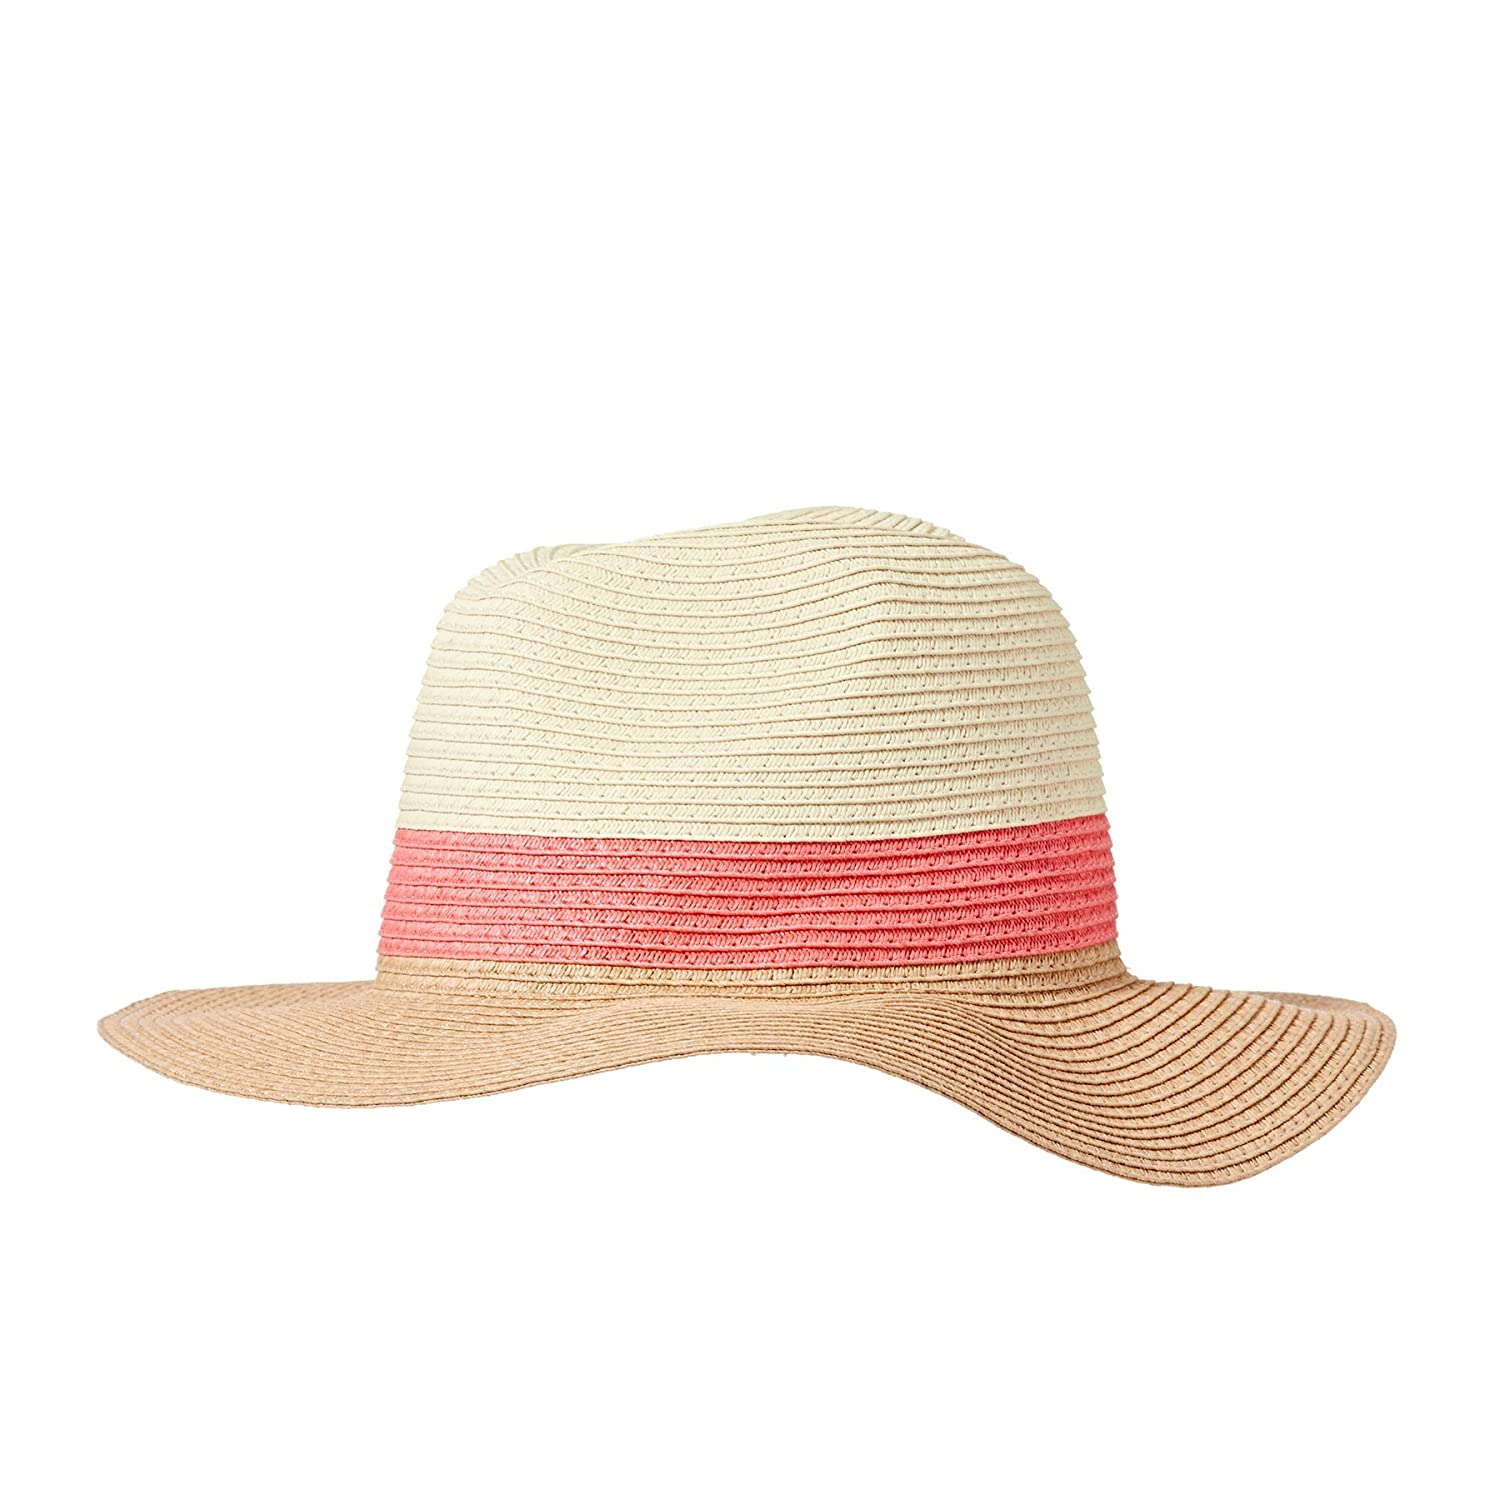 a5779d3f8 Joules Hats Dora Trilby Hat - Natural 1-Size: Amazon.co.uk: Clothing